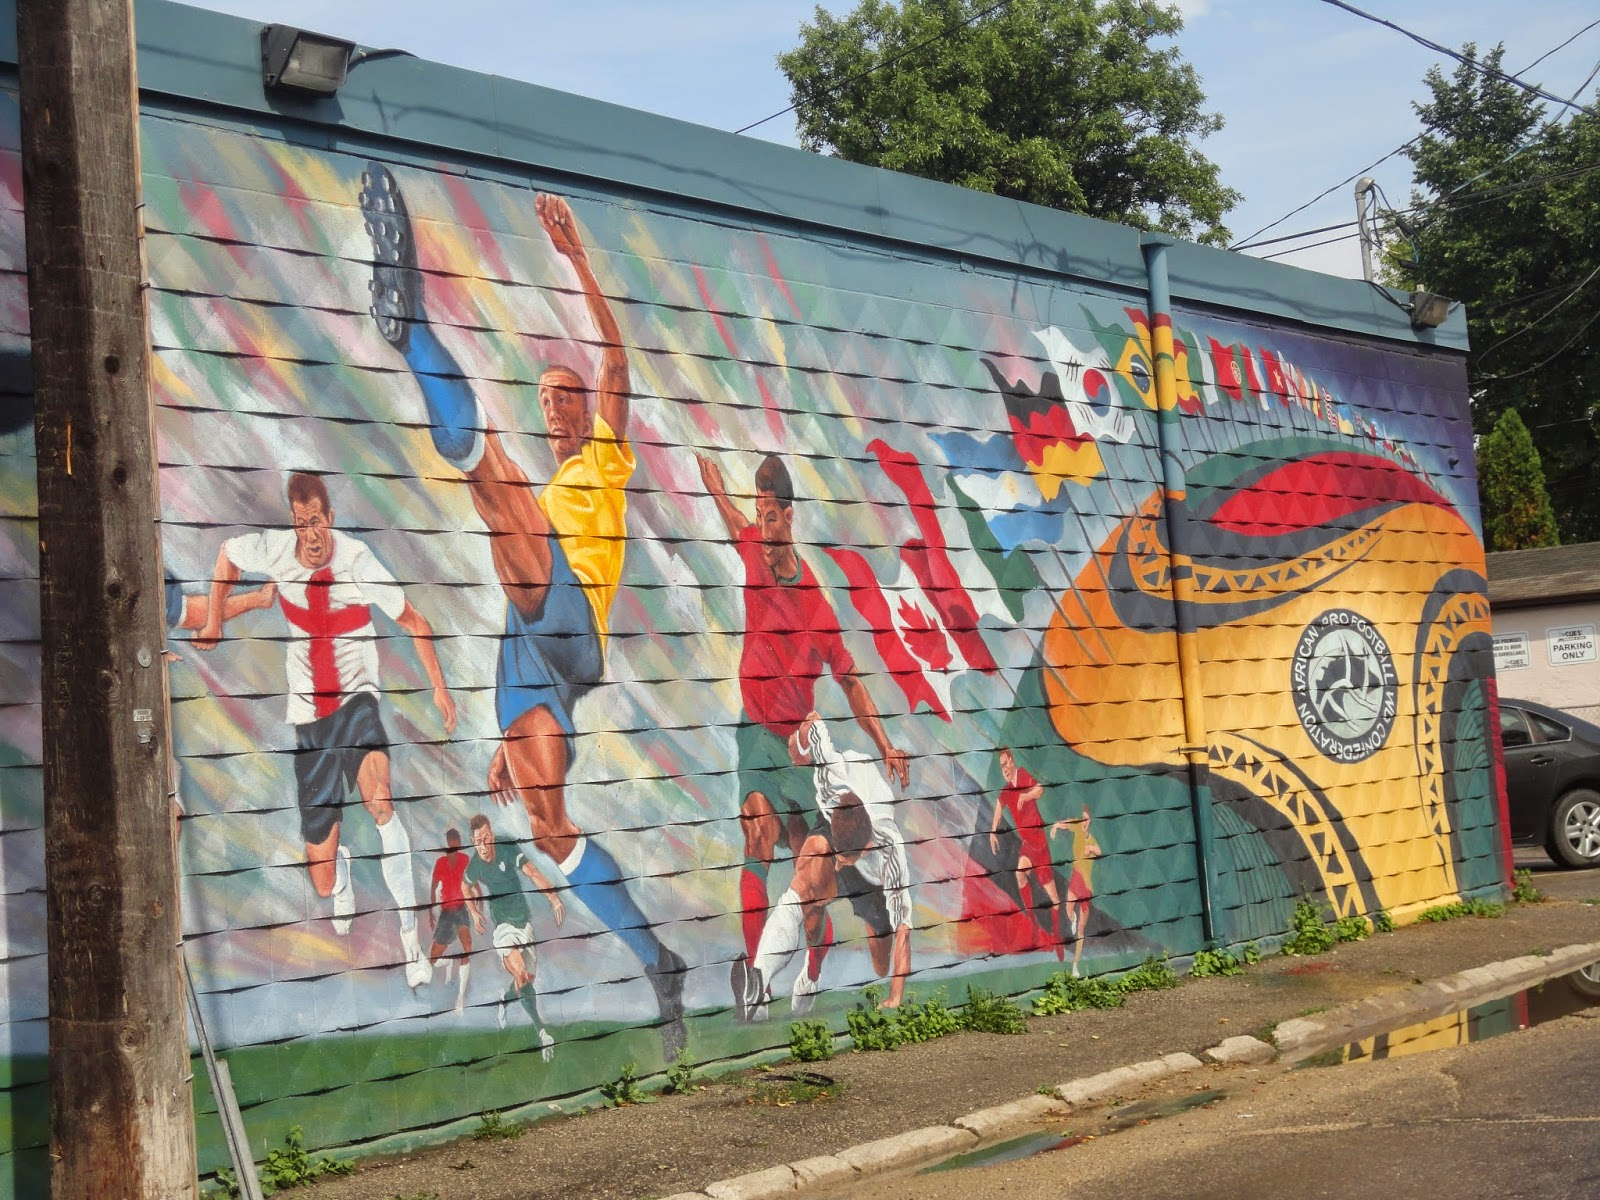 """World Cup Soccer: The Real League of Nations"" by Charlie Johnston (2009) - X-Cues Billiards and Cafe at 551 Sargent Avenue"